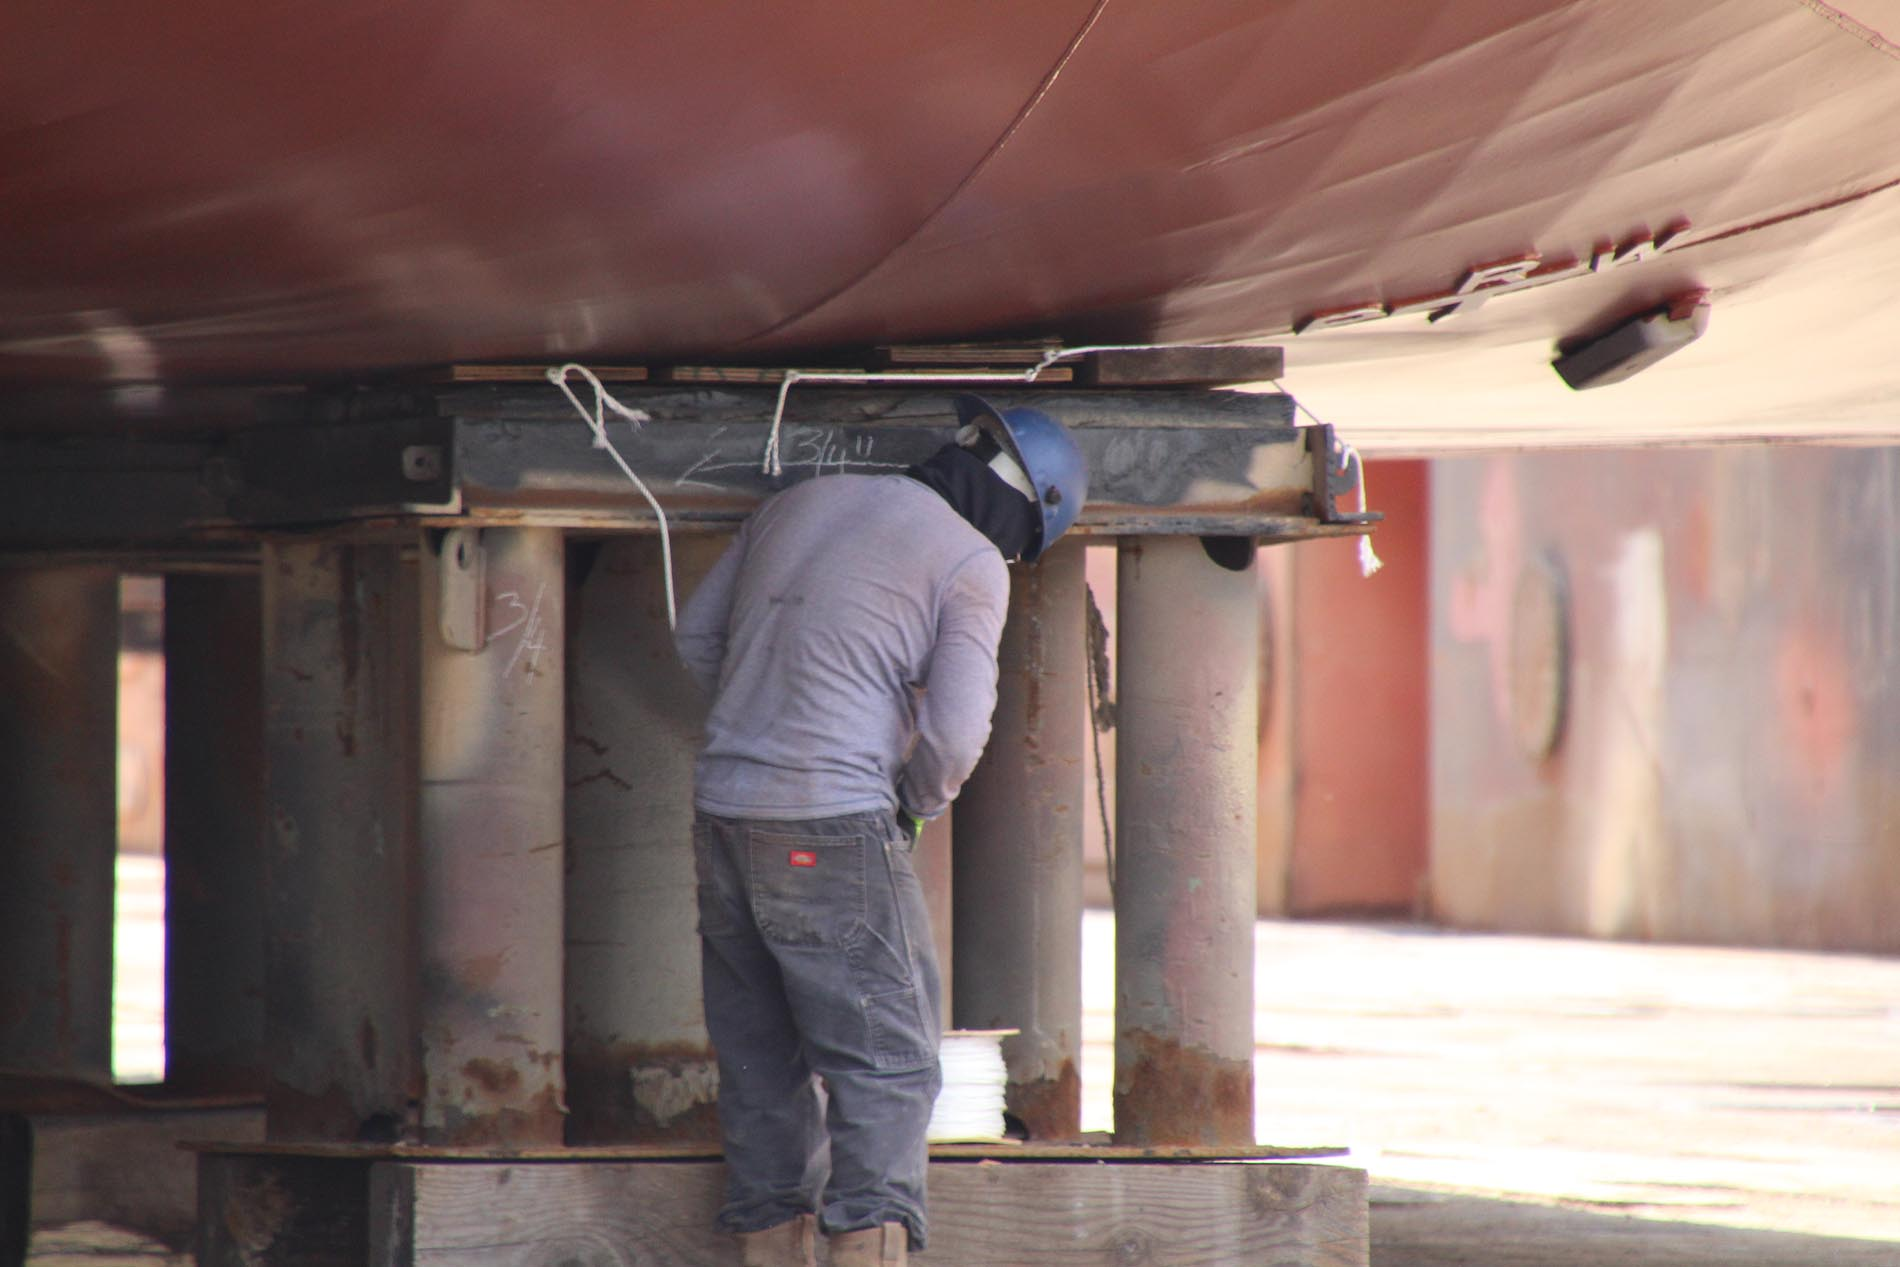 Painter under ship in dry dock